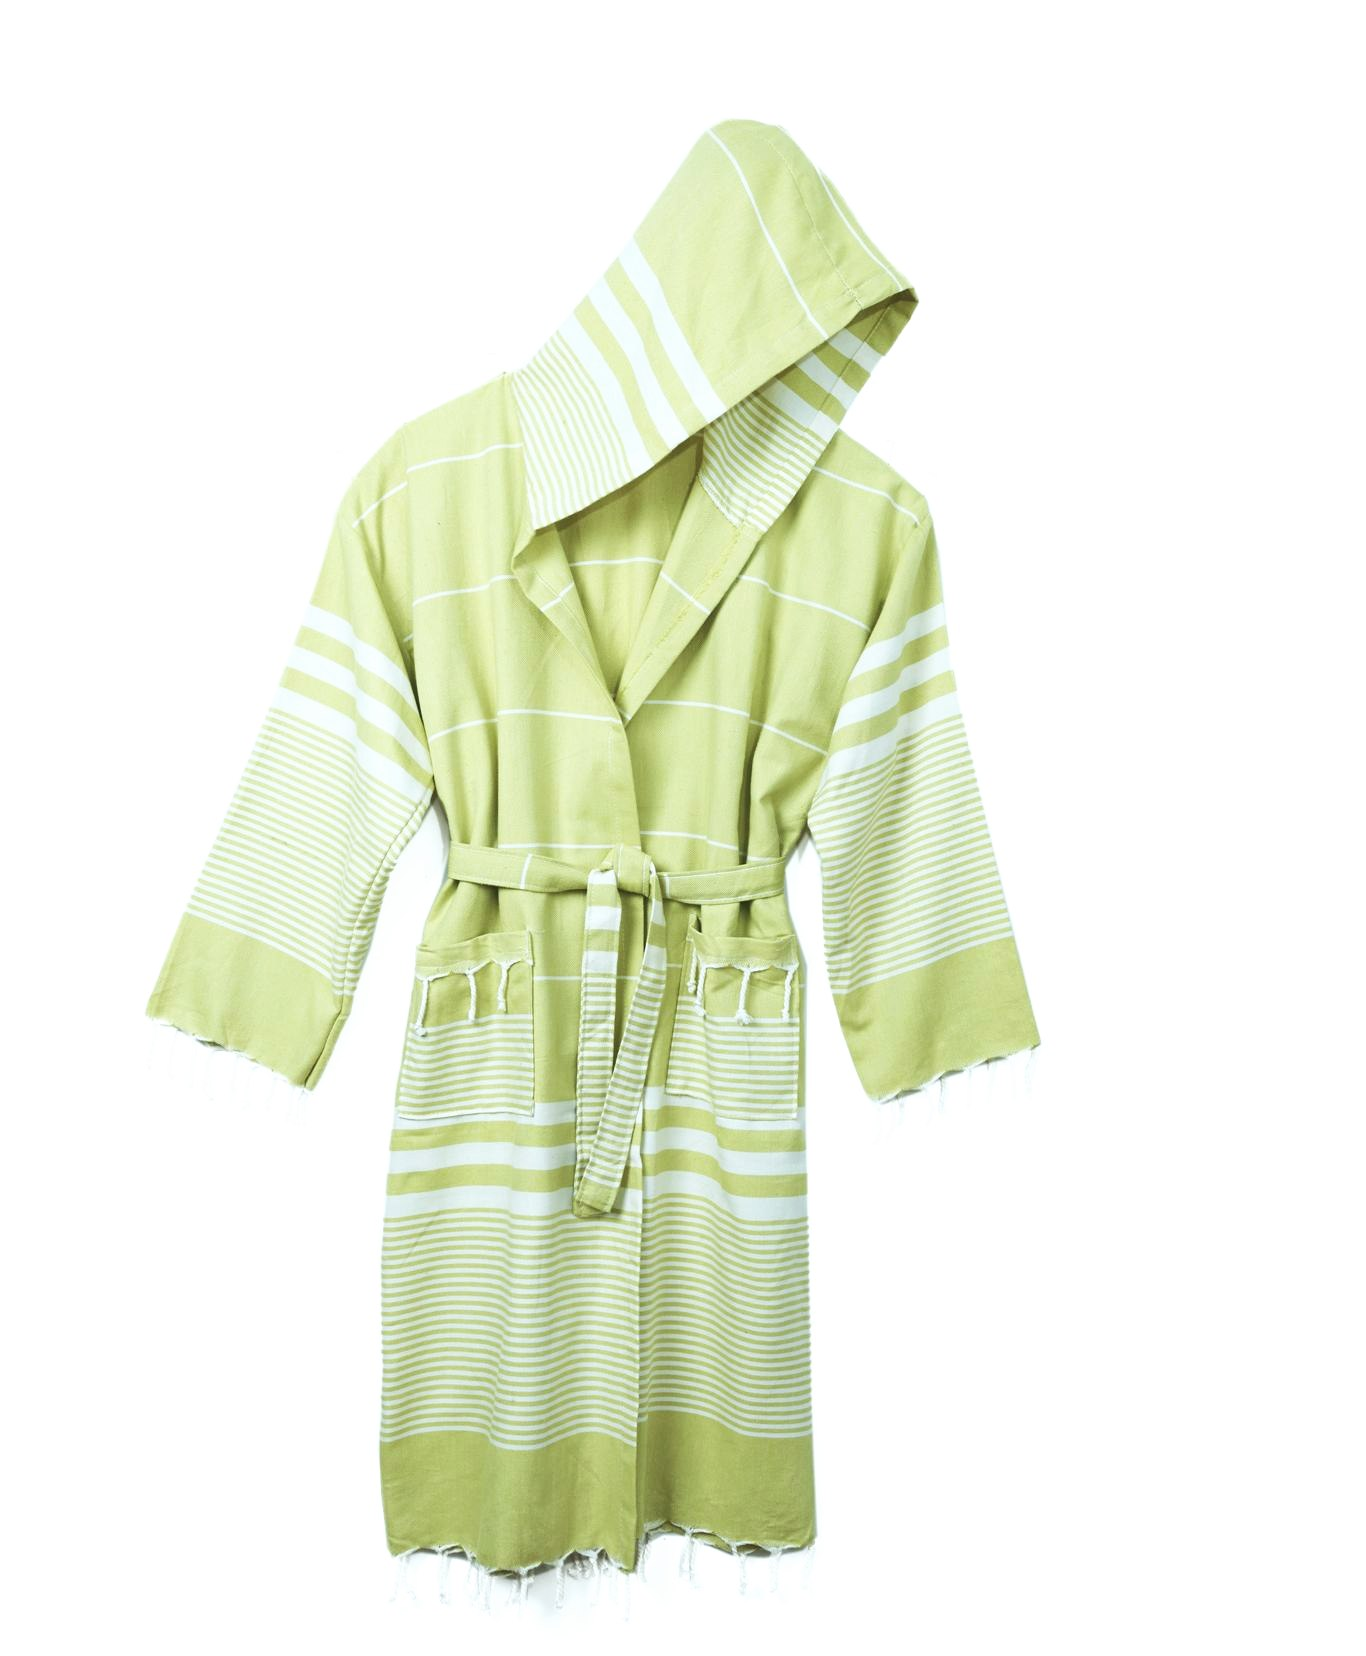 Turkish Bathrobes Turkish Hammam Towels Towelling